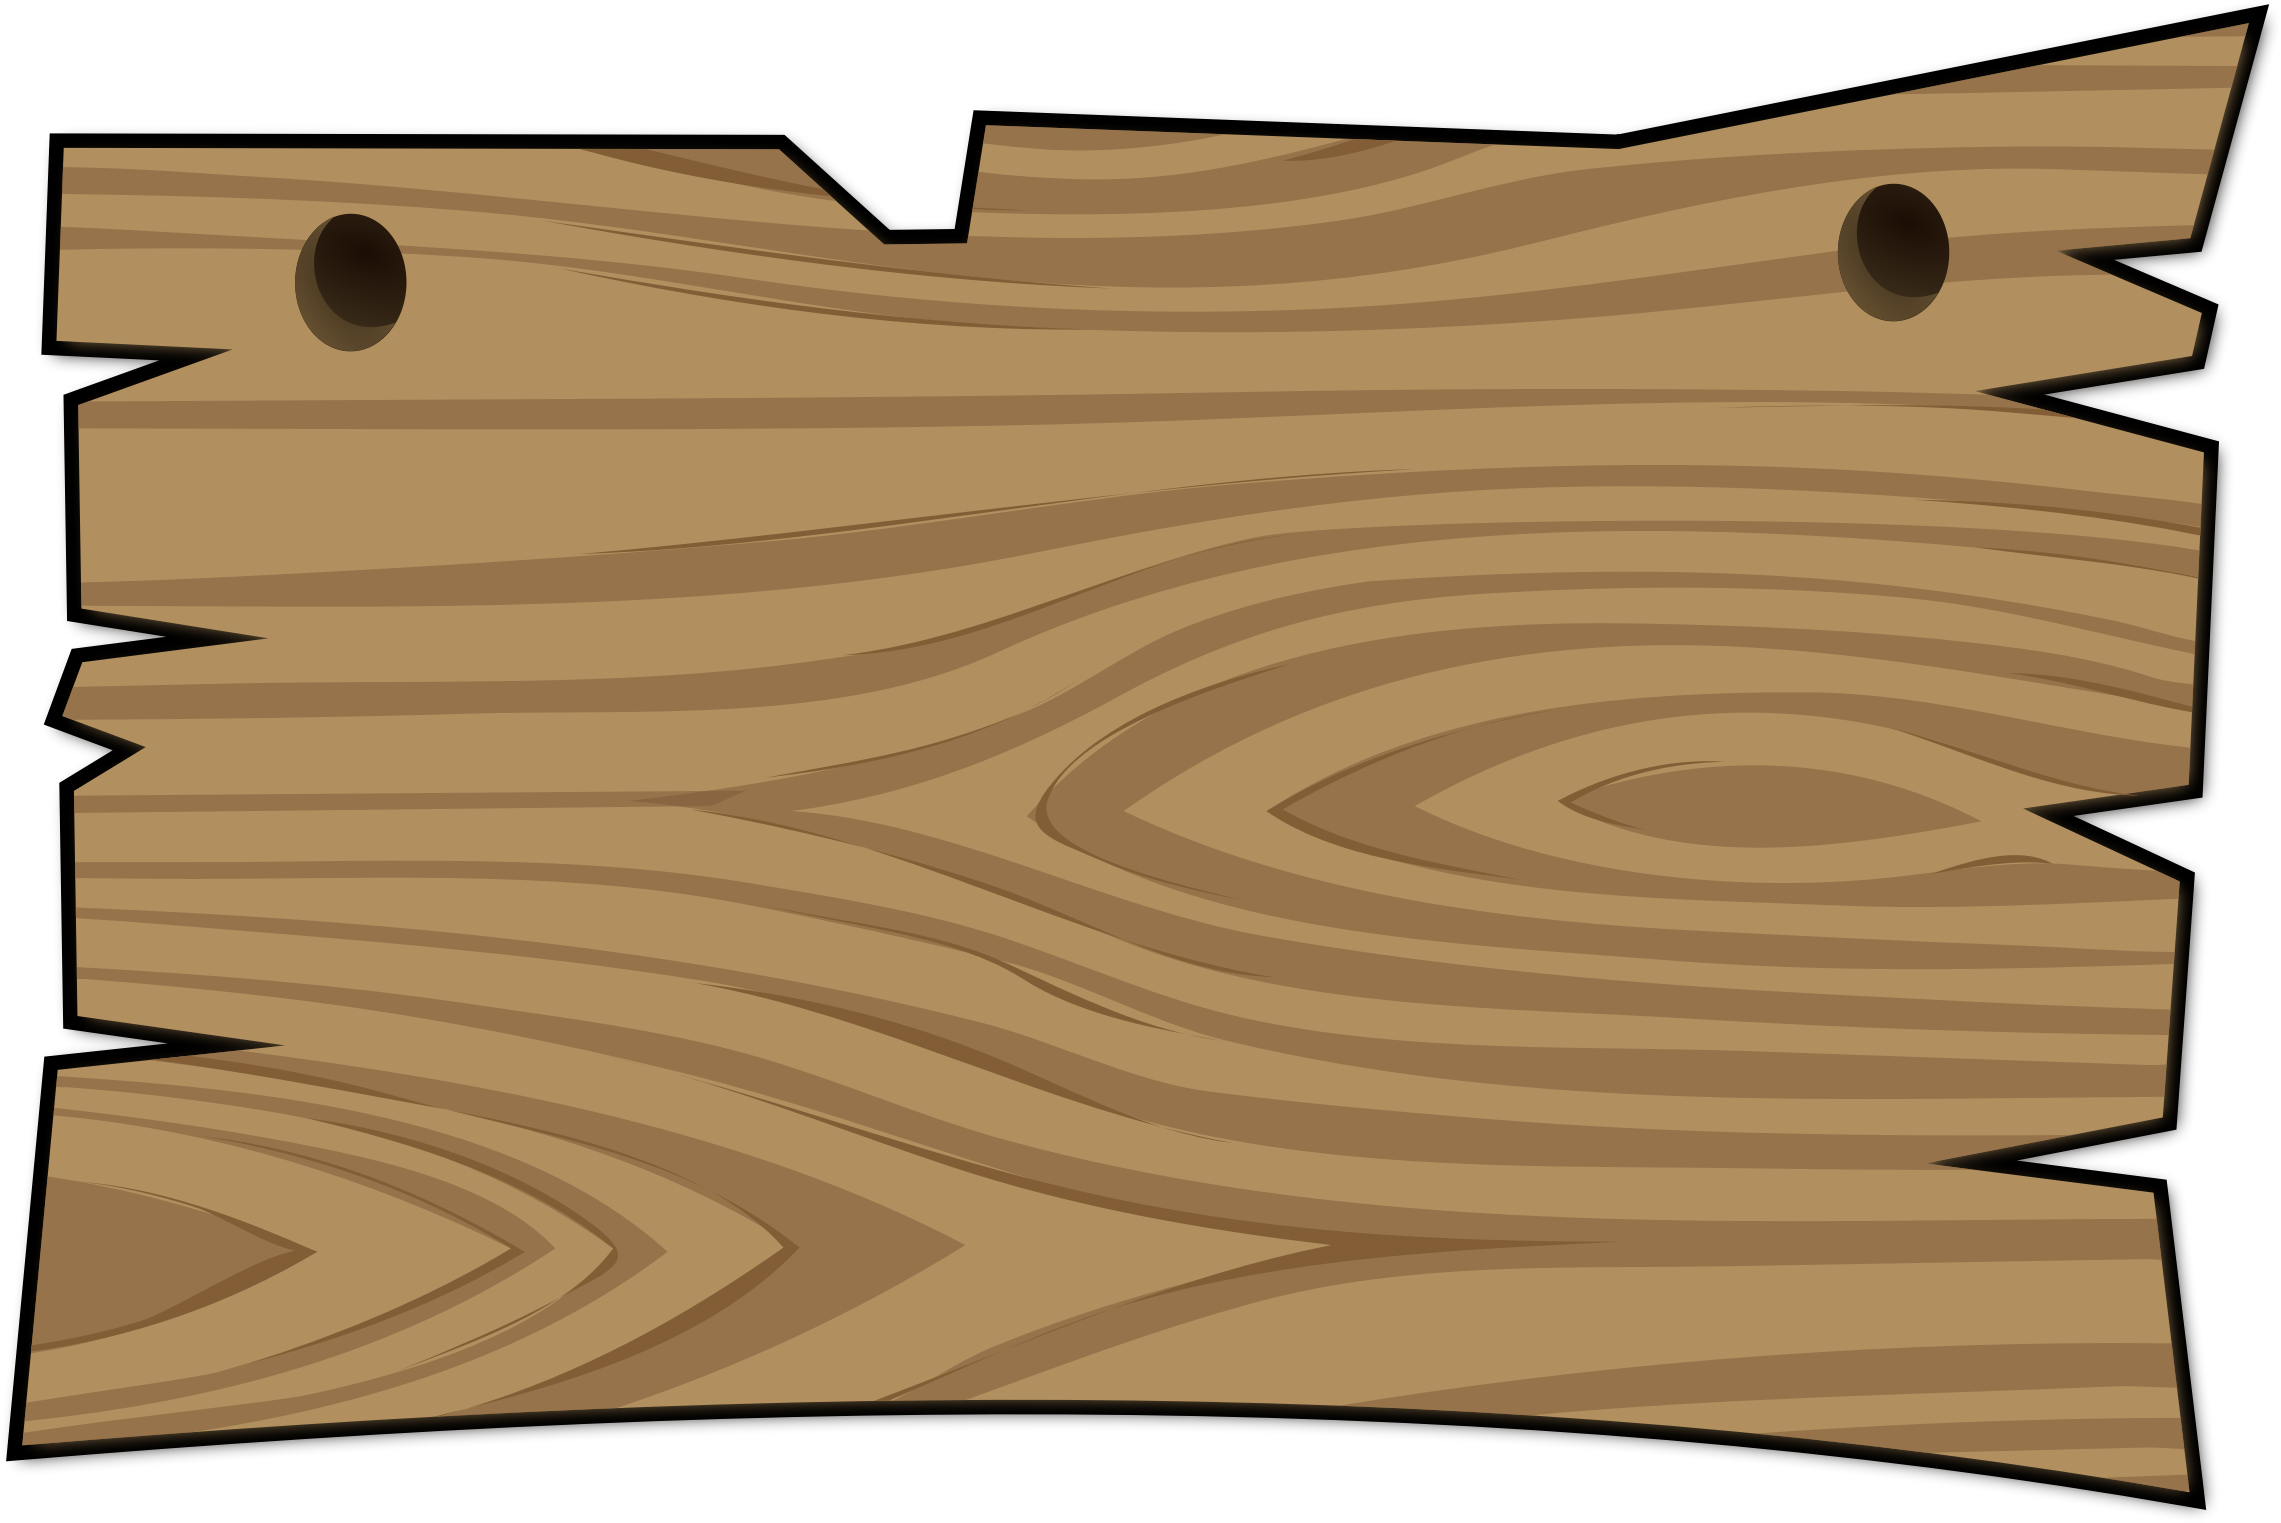 Board vector old wood. Pin by tony fuller